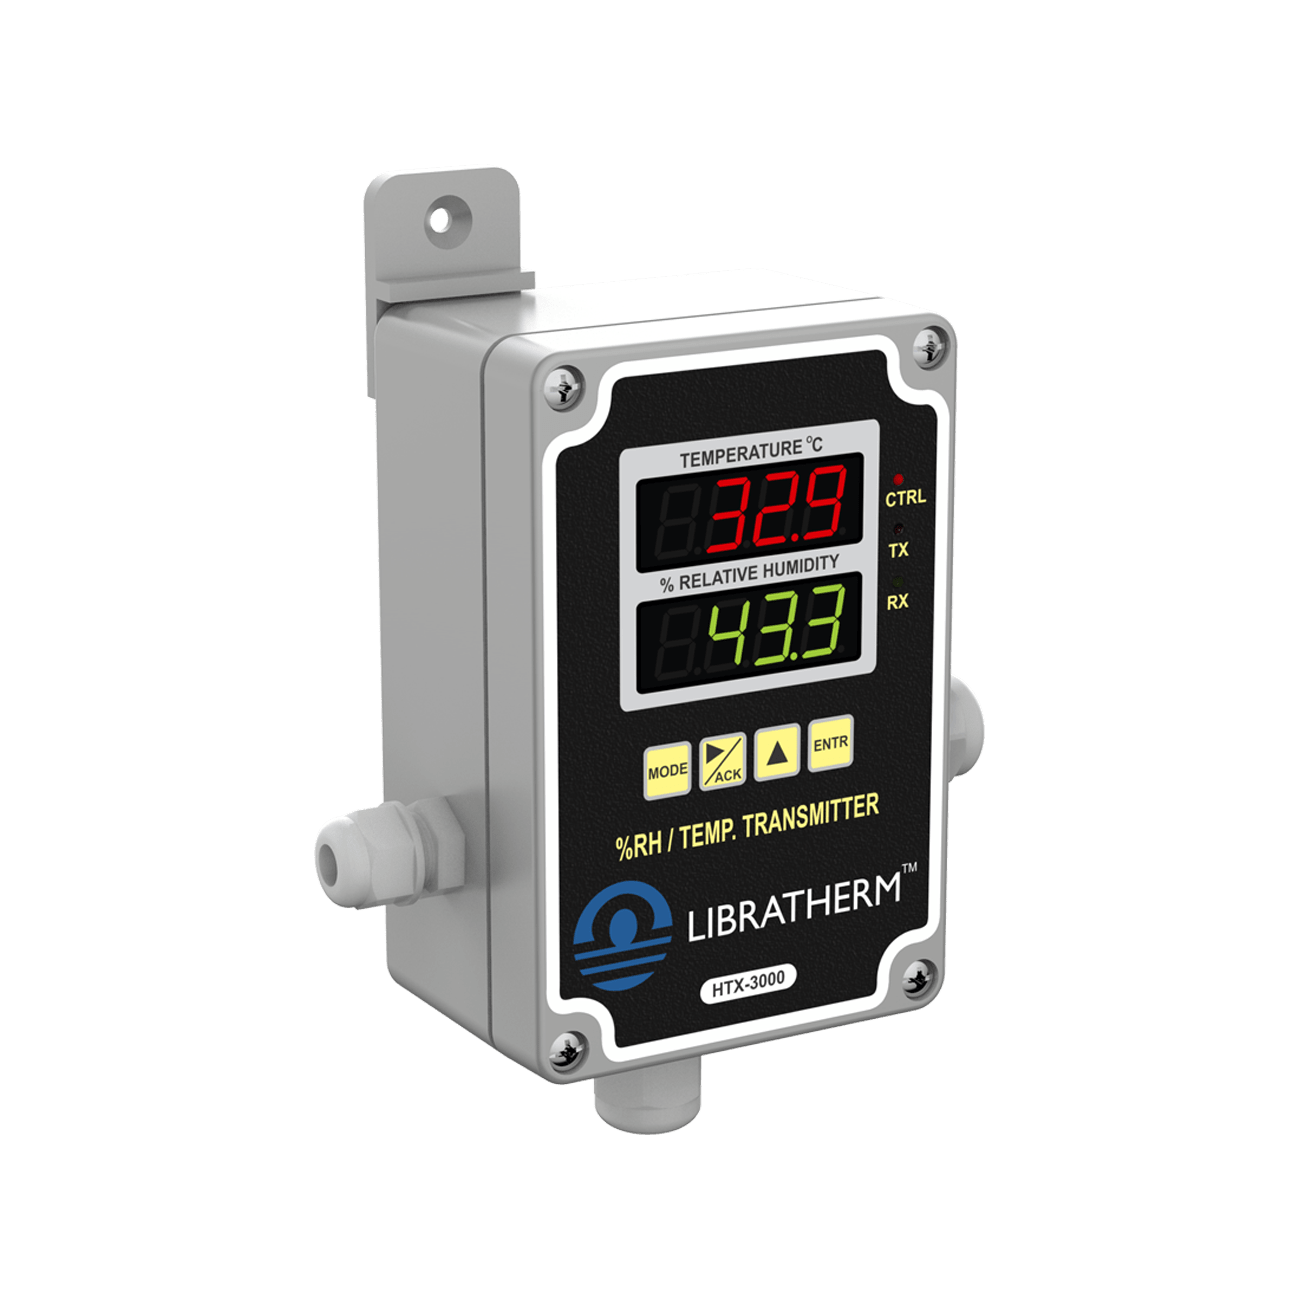 humidity-and-temperature-transmitter-with-local-display-and-rs-485-htx-3000-right